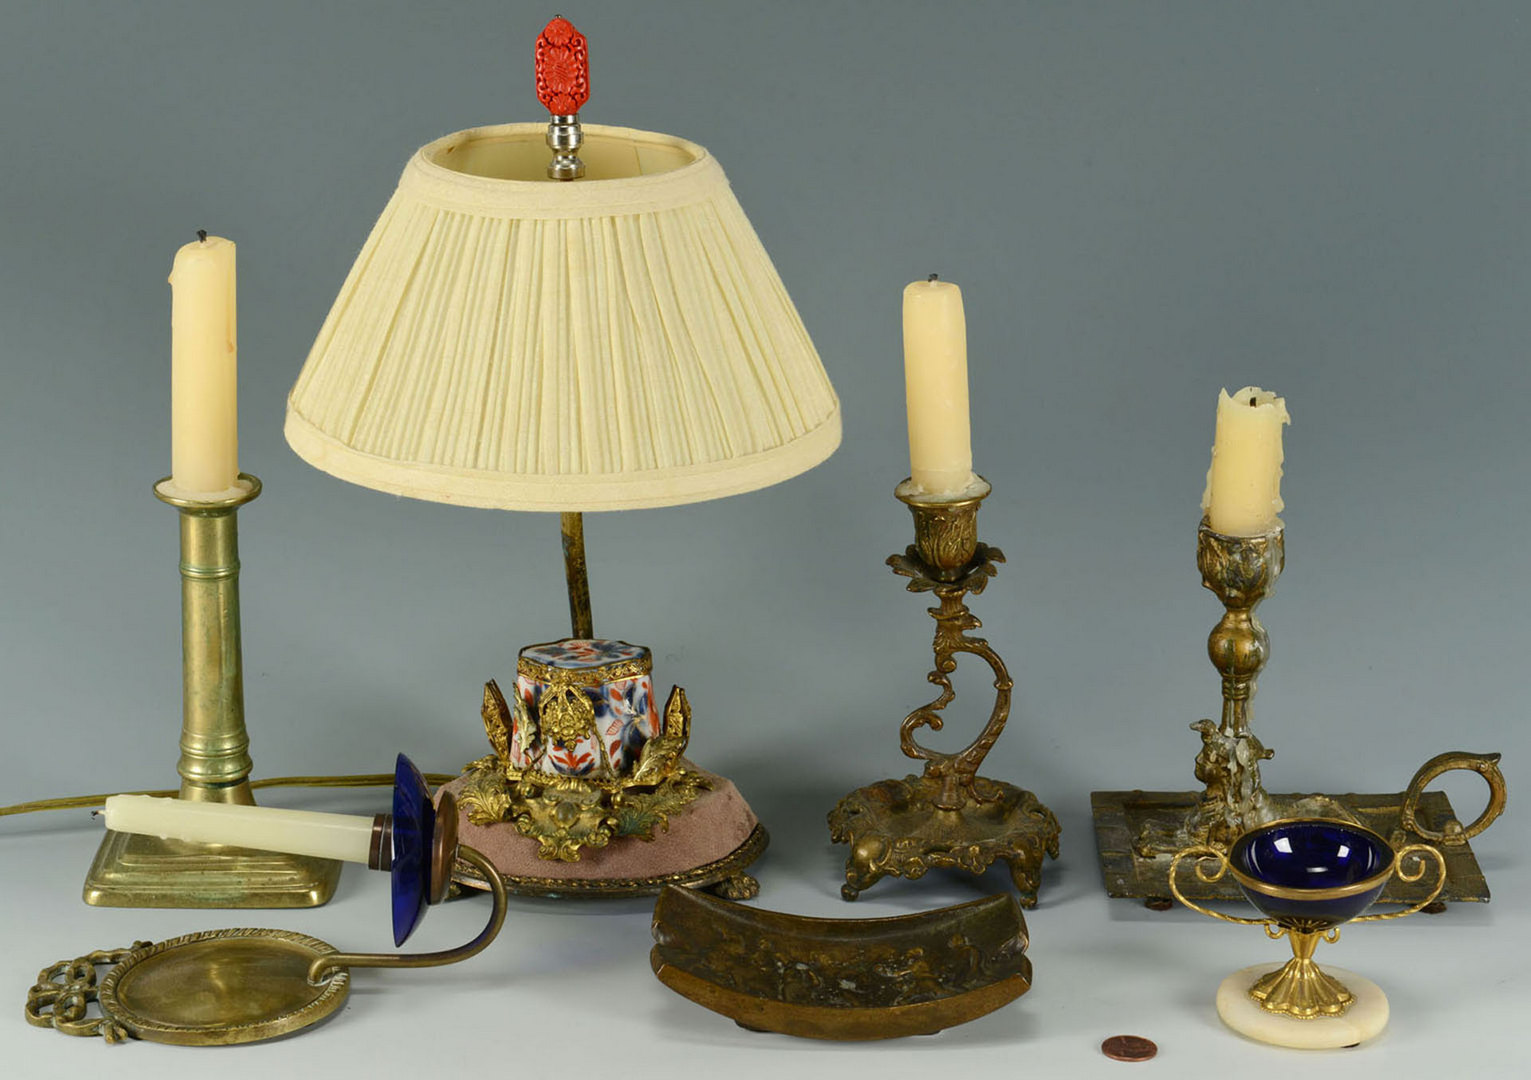 Lot 666: Grouping of 7 Lighting & Accessory Items